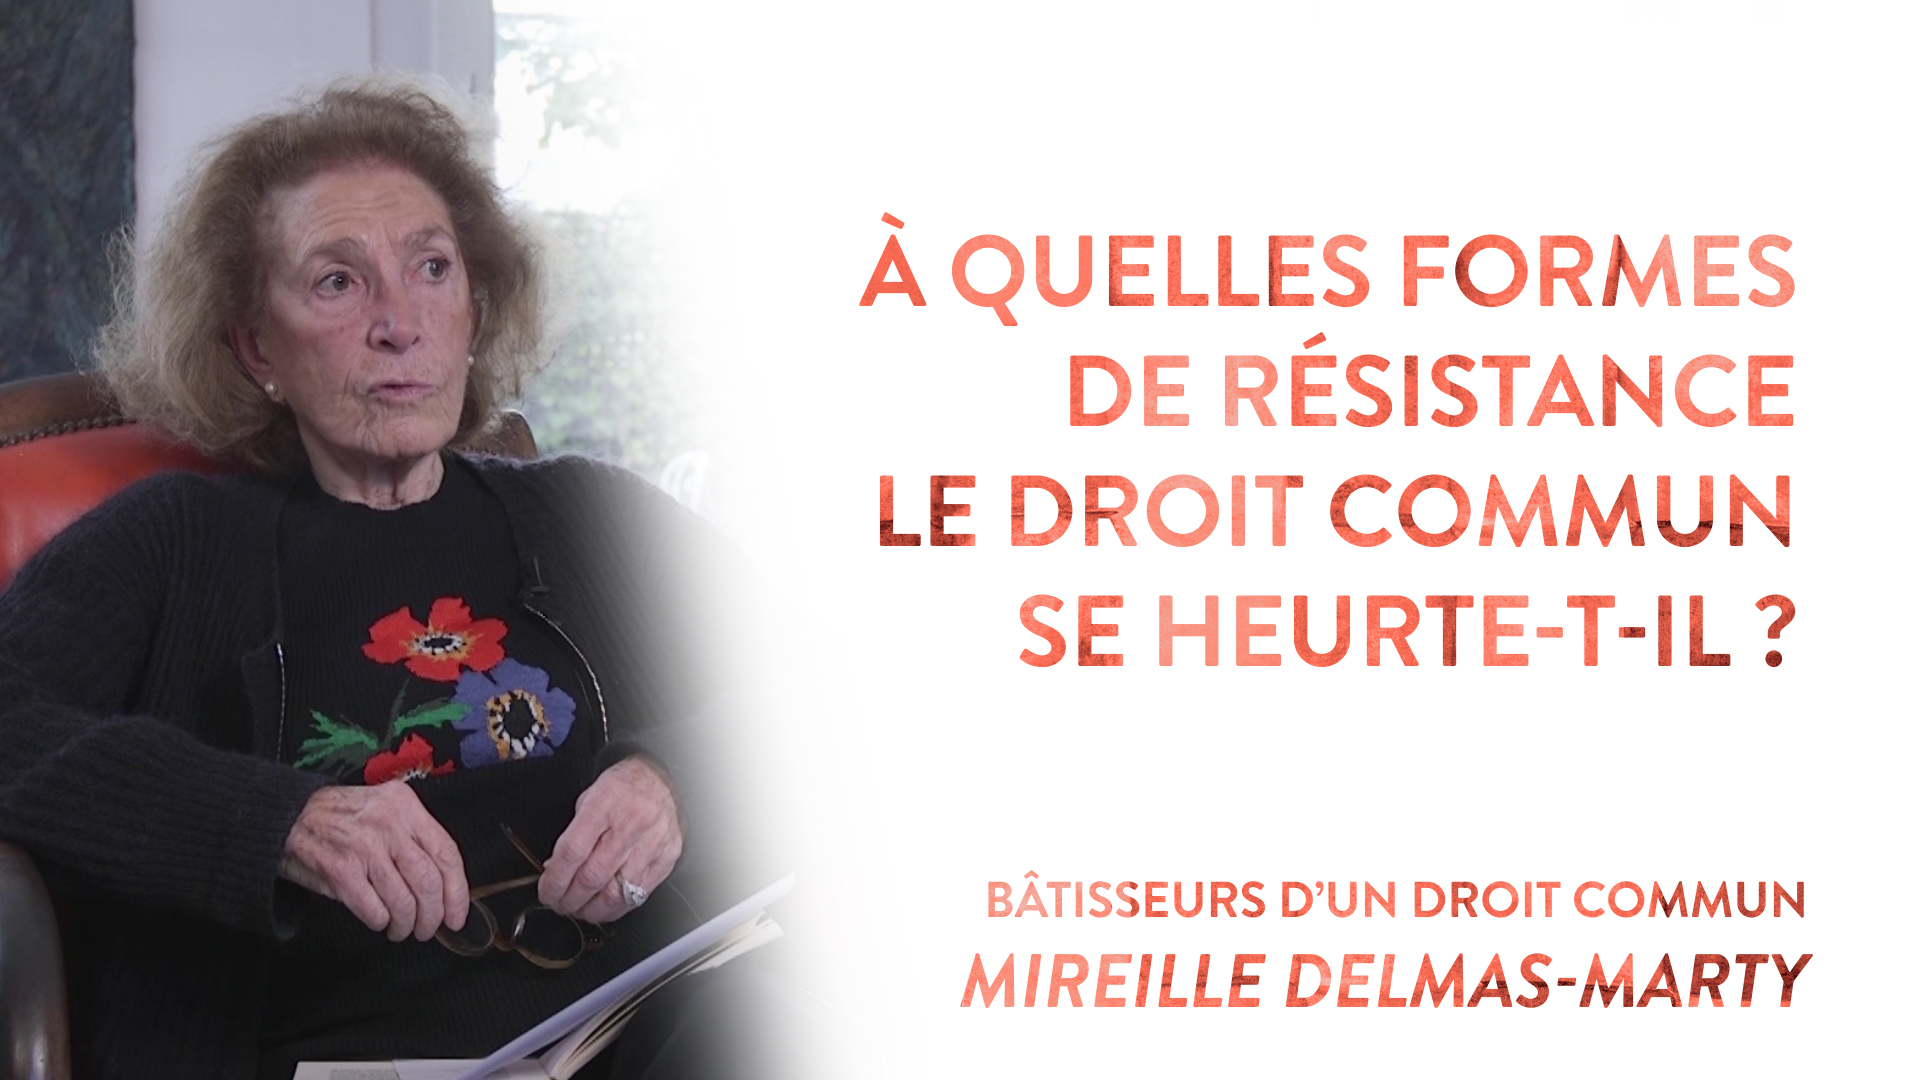 Mireille Delmas-Marty question 6